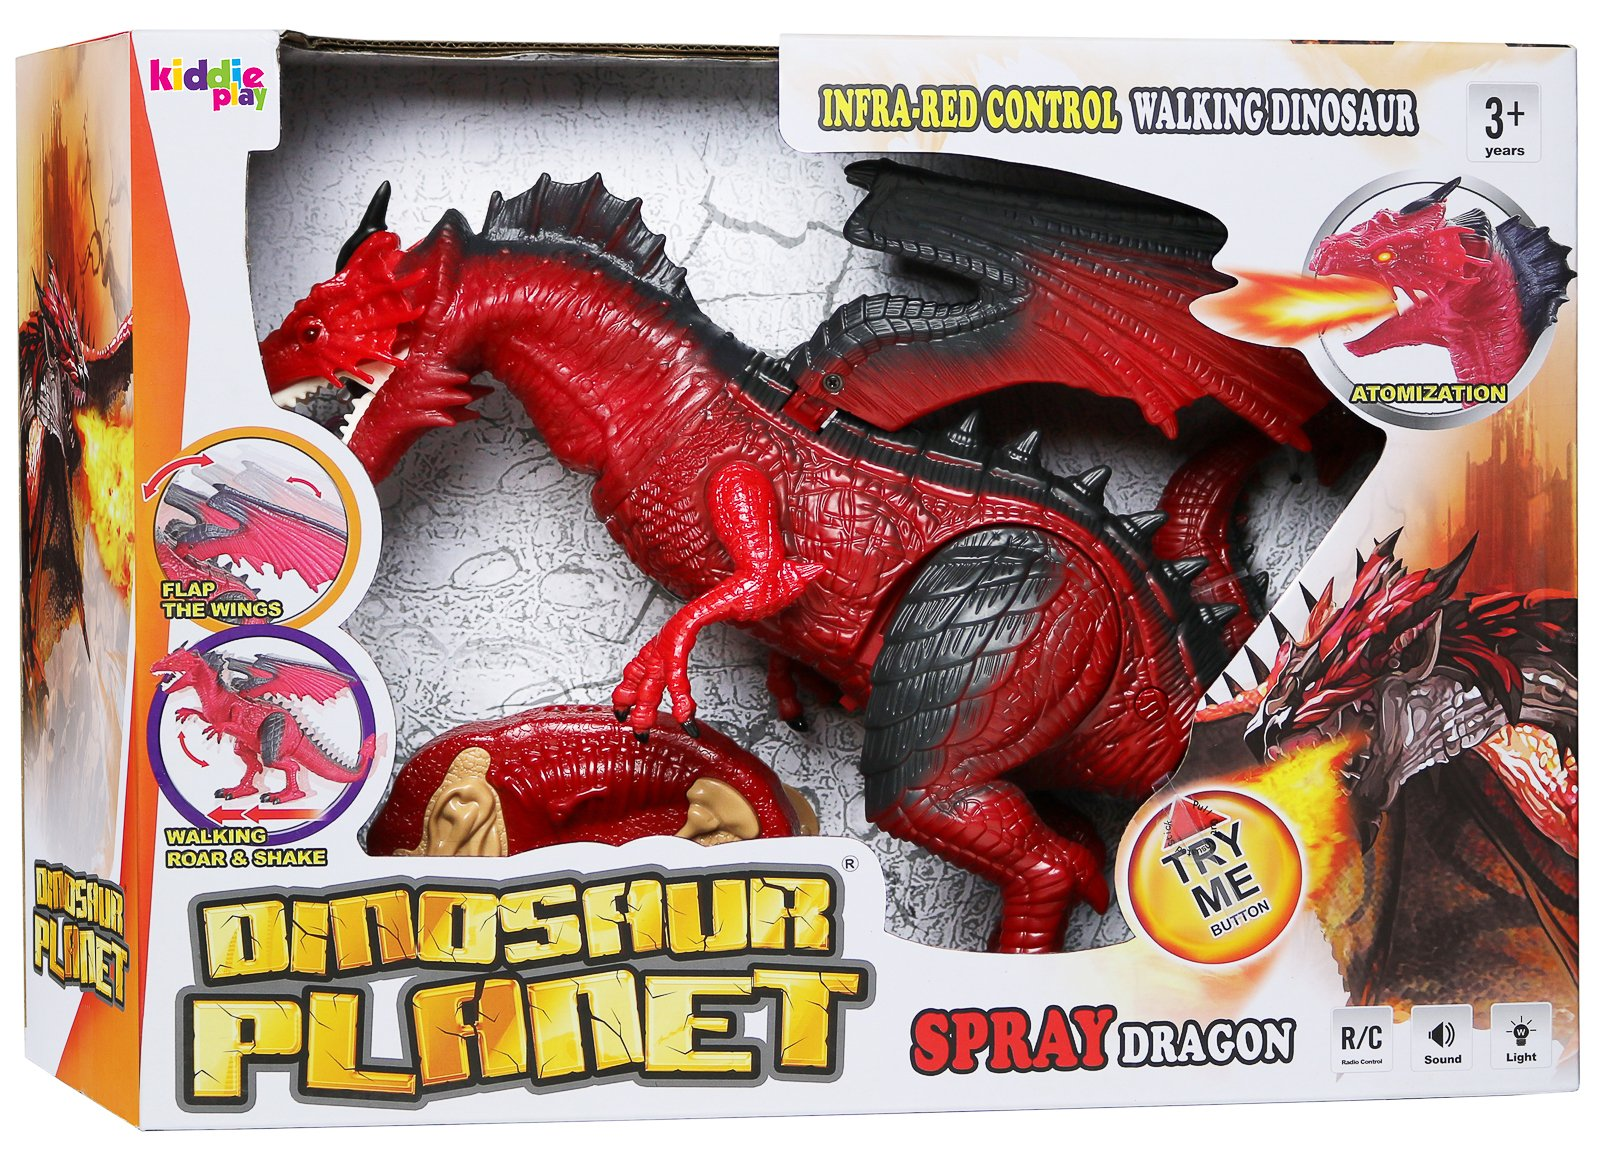 Kiddie Play Remote Control Dinosaur Toy Smoke Breathing and Walking Dragon with Lights and Sounds        by Kiddie Play (Image #5)